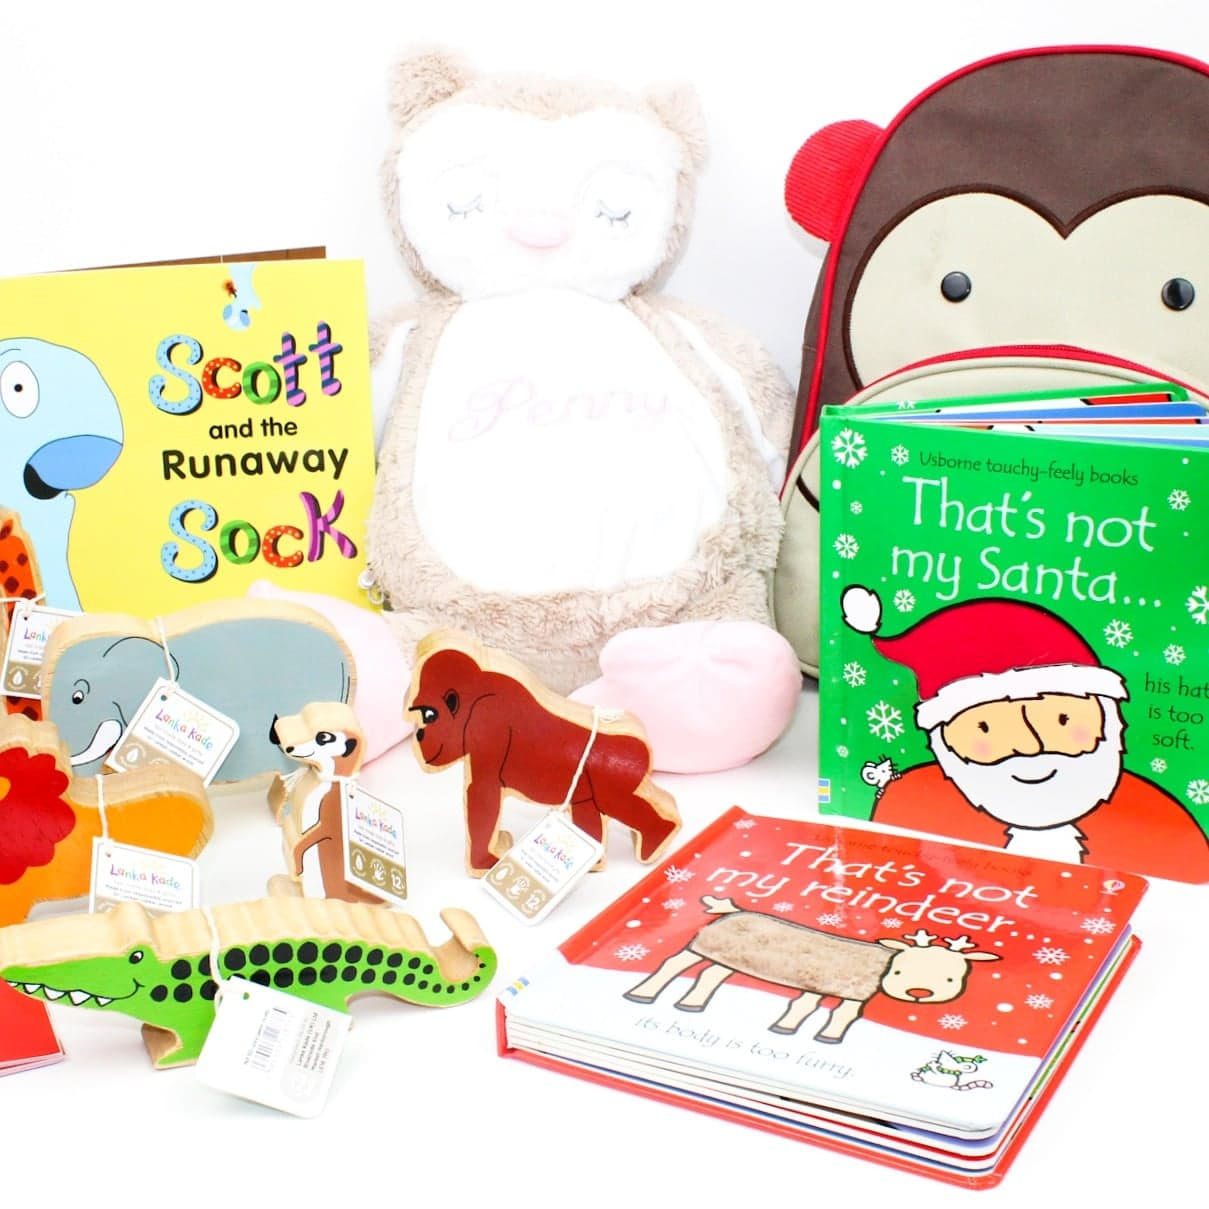 Toddler's Christmas Gift Guide feat. Able Labels & Lanka Kade